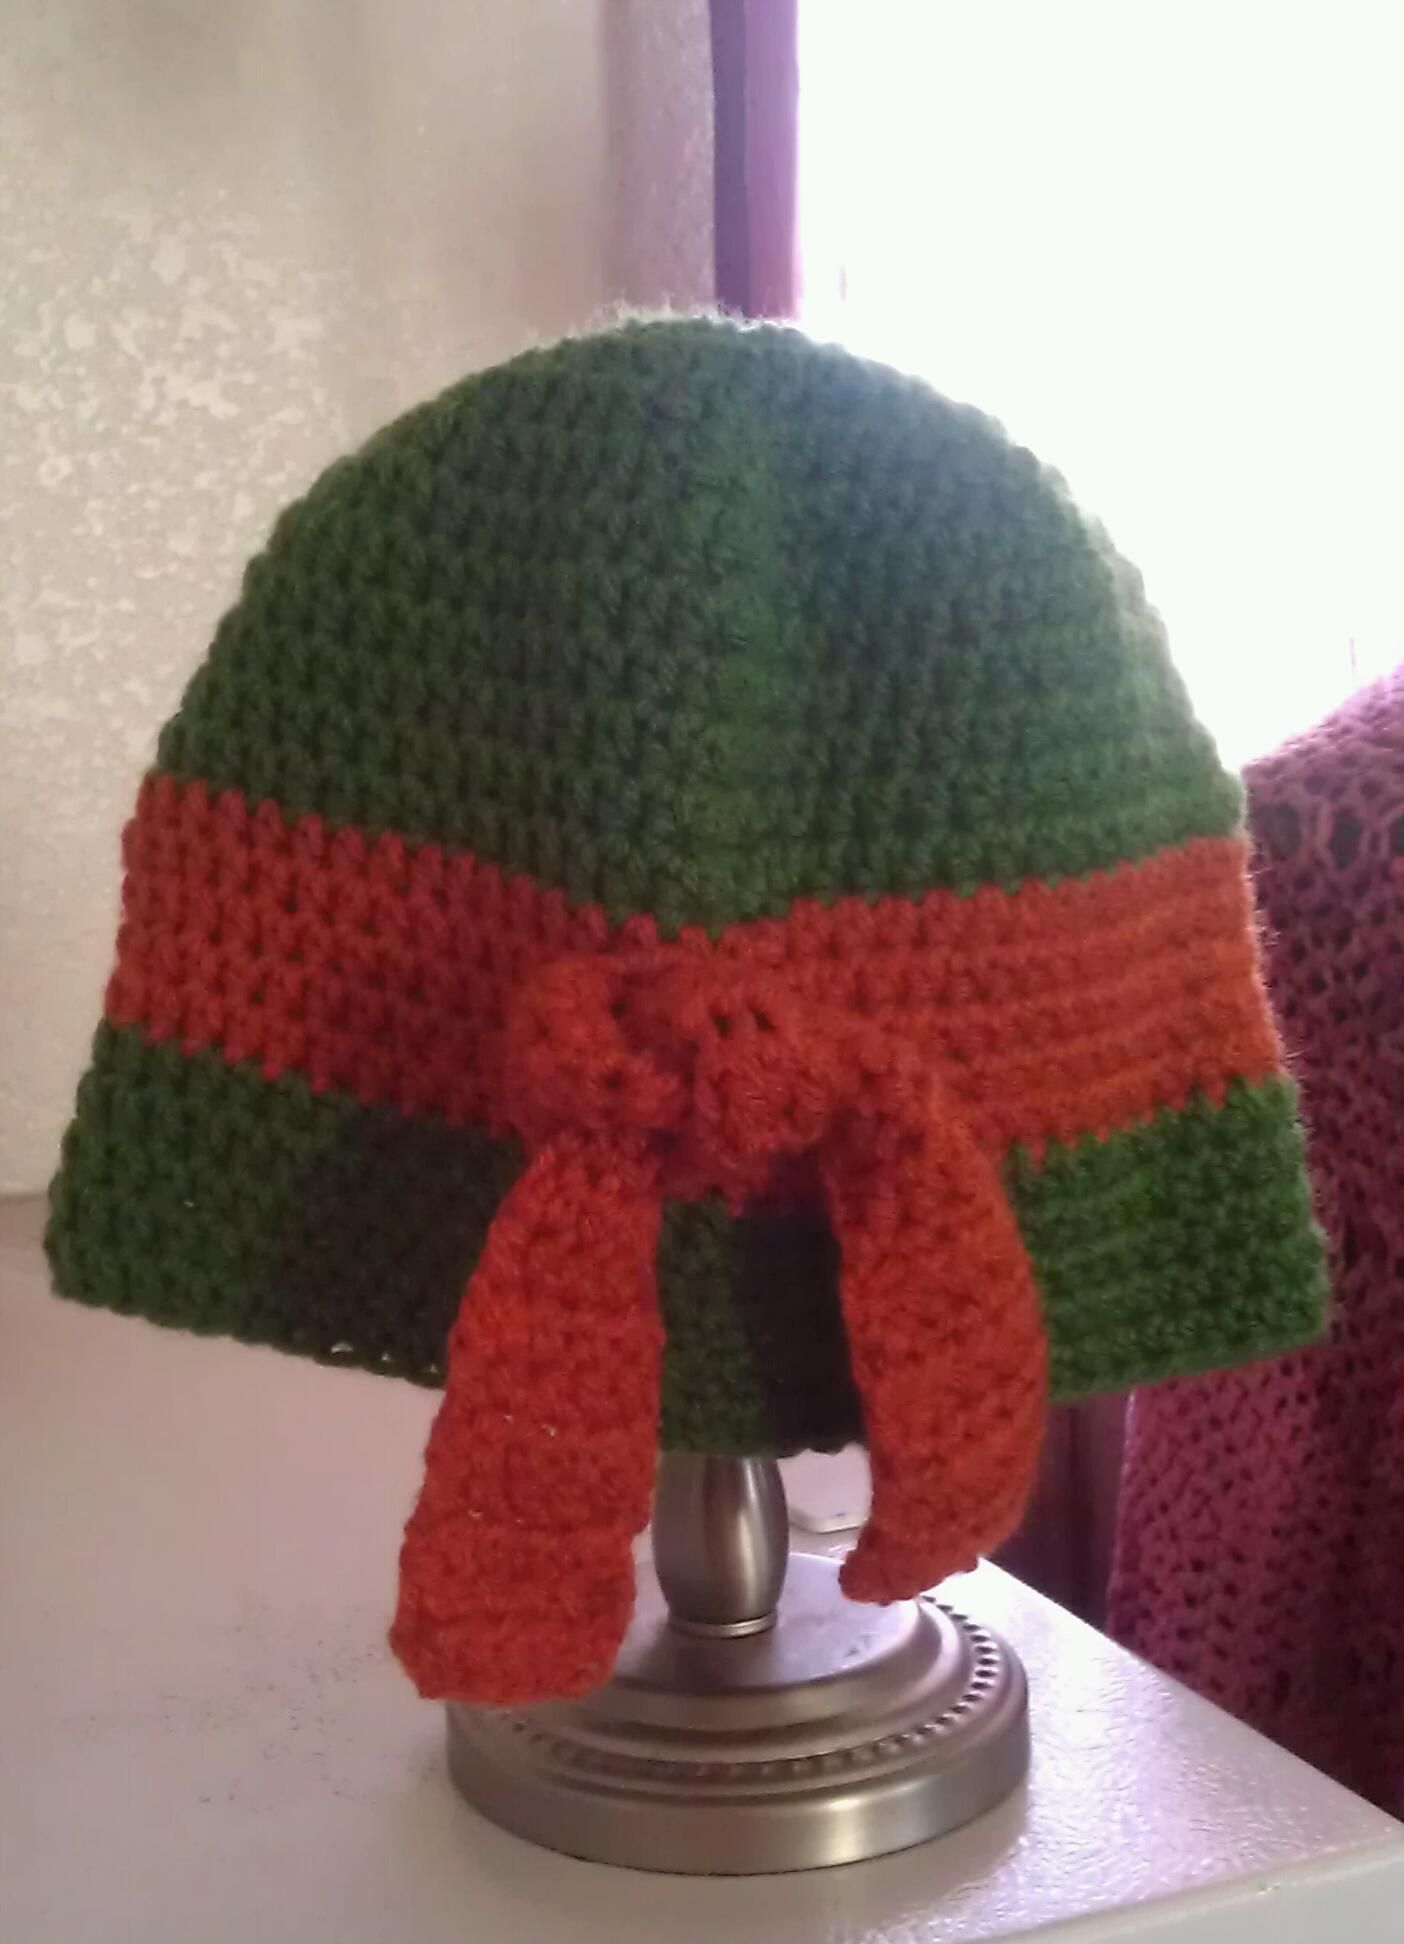 Back View of Turtle =)